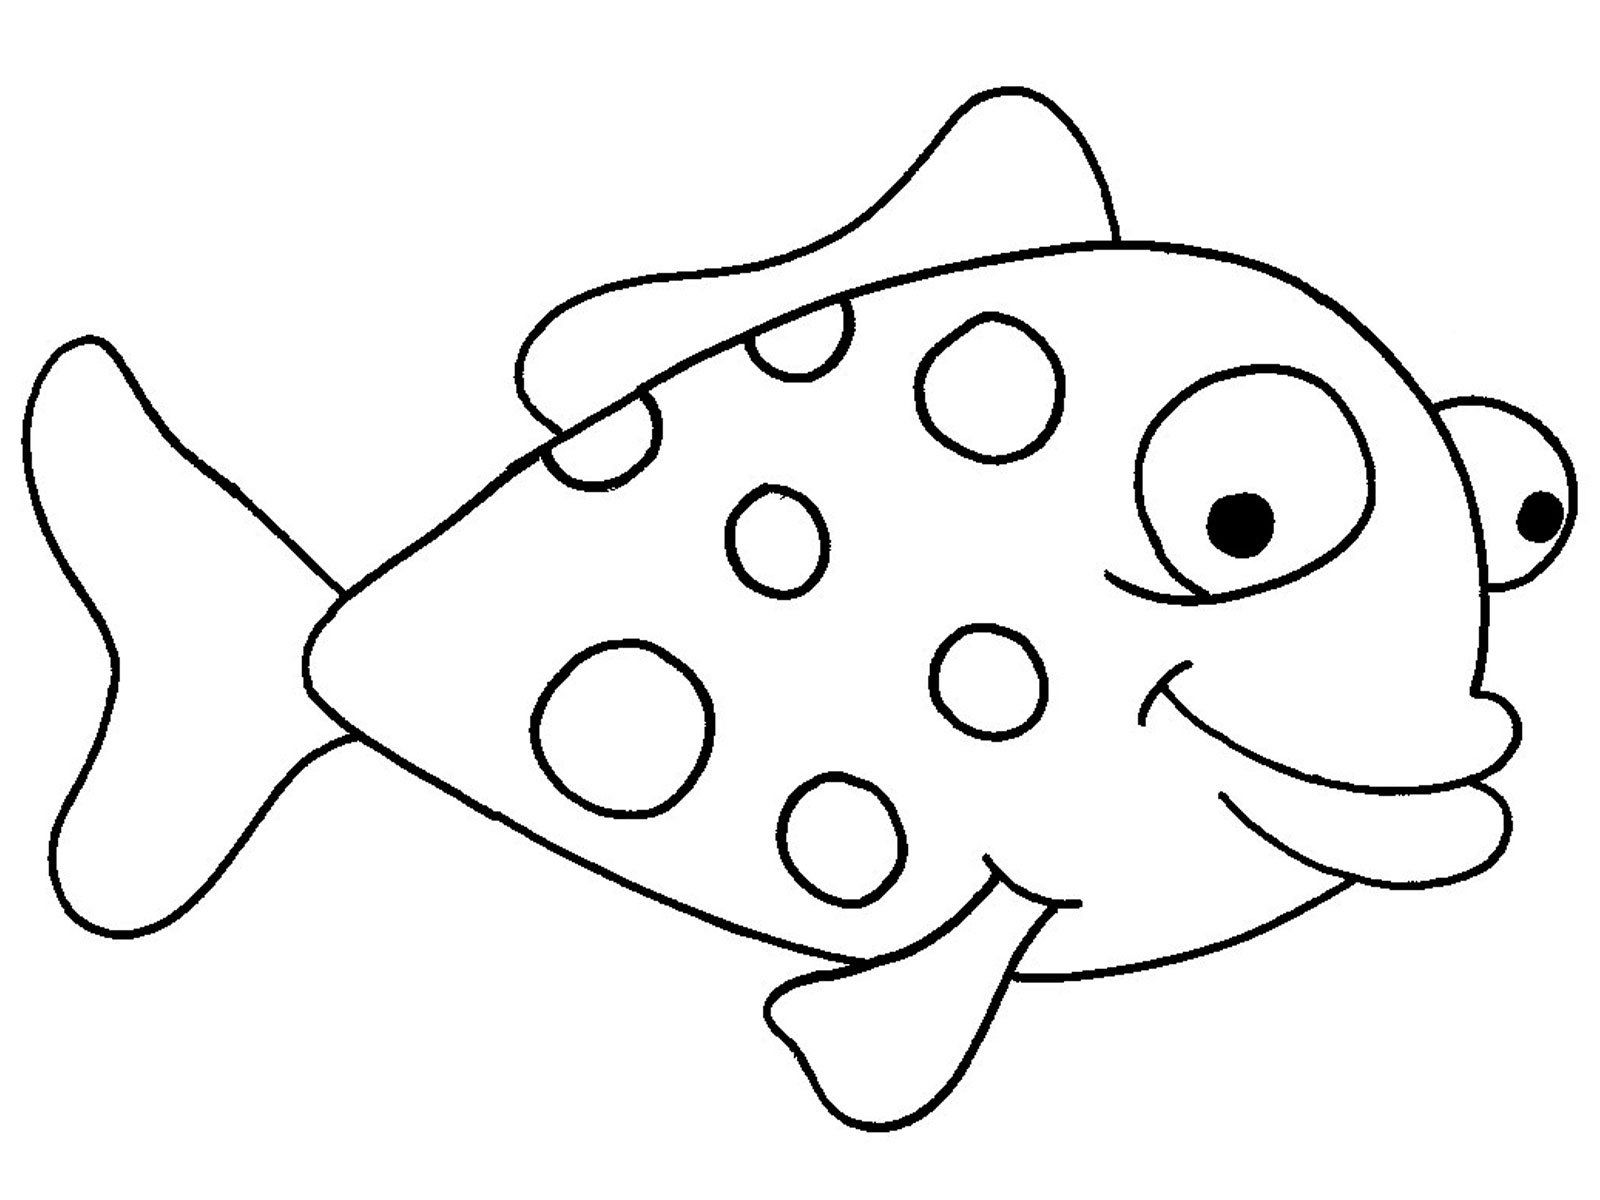 Fish drawings for kids